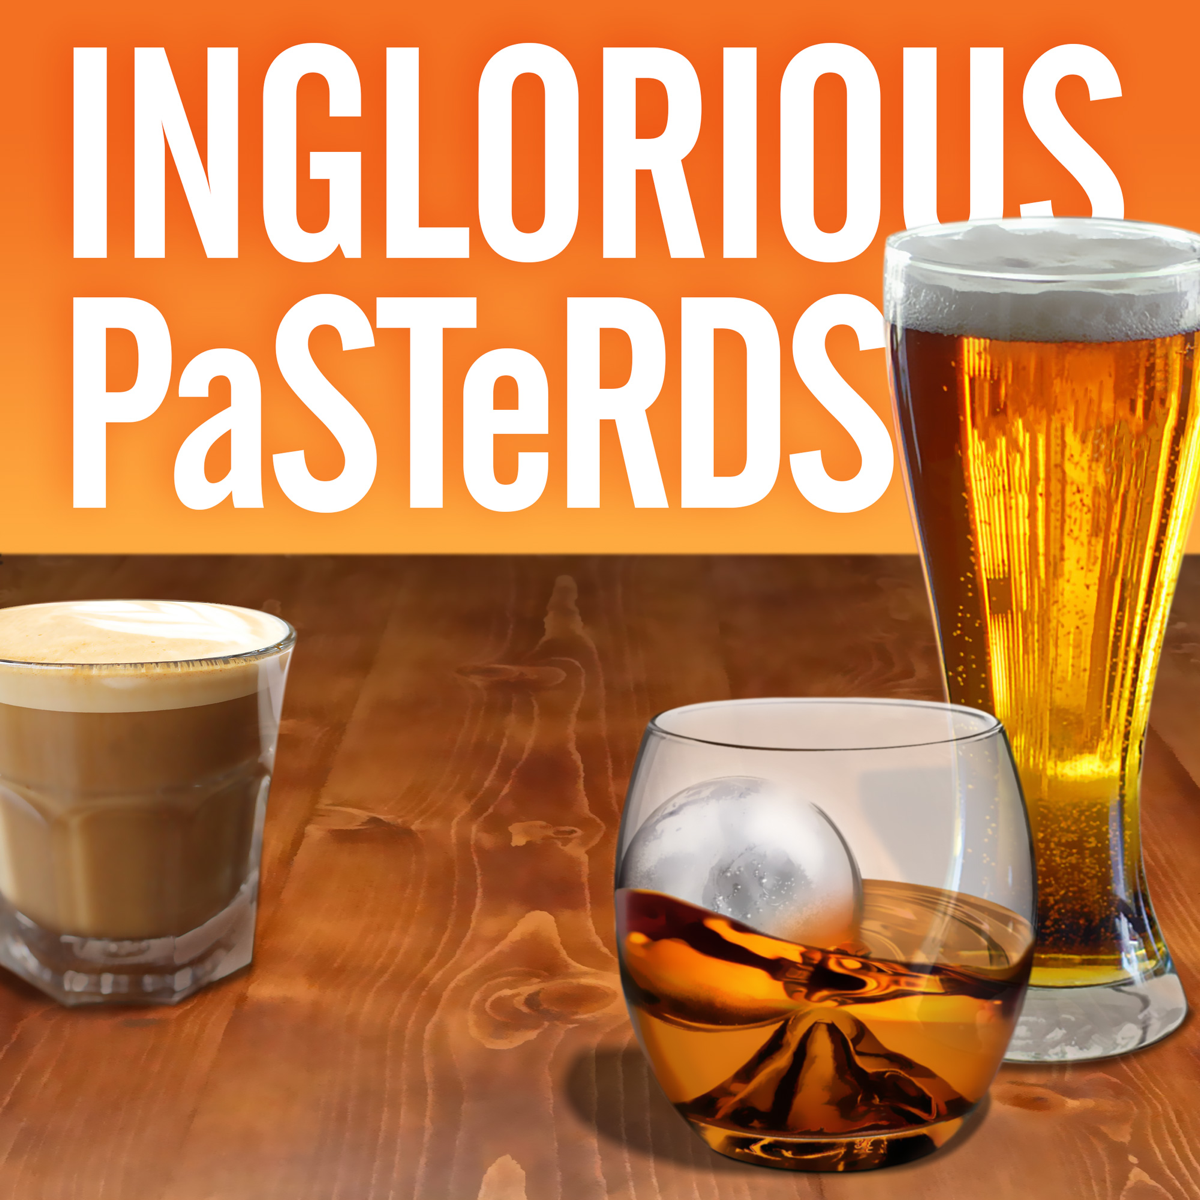 Best episodes of Inglorious Pasterds   Podyssey Podcasts